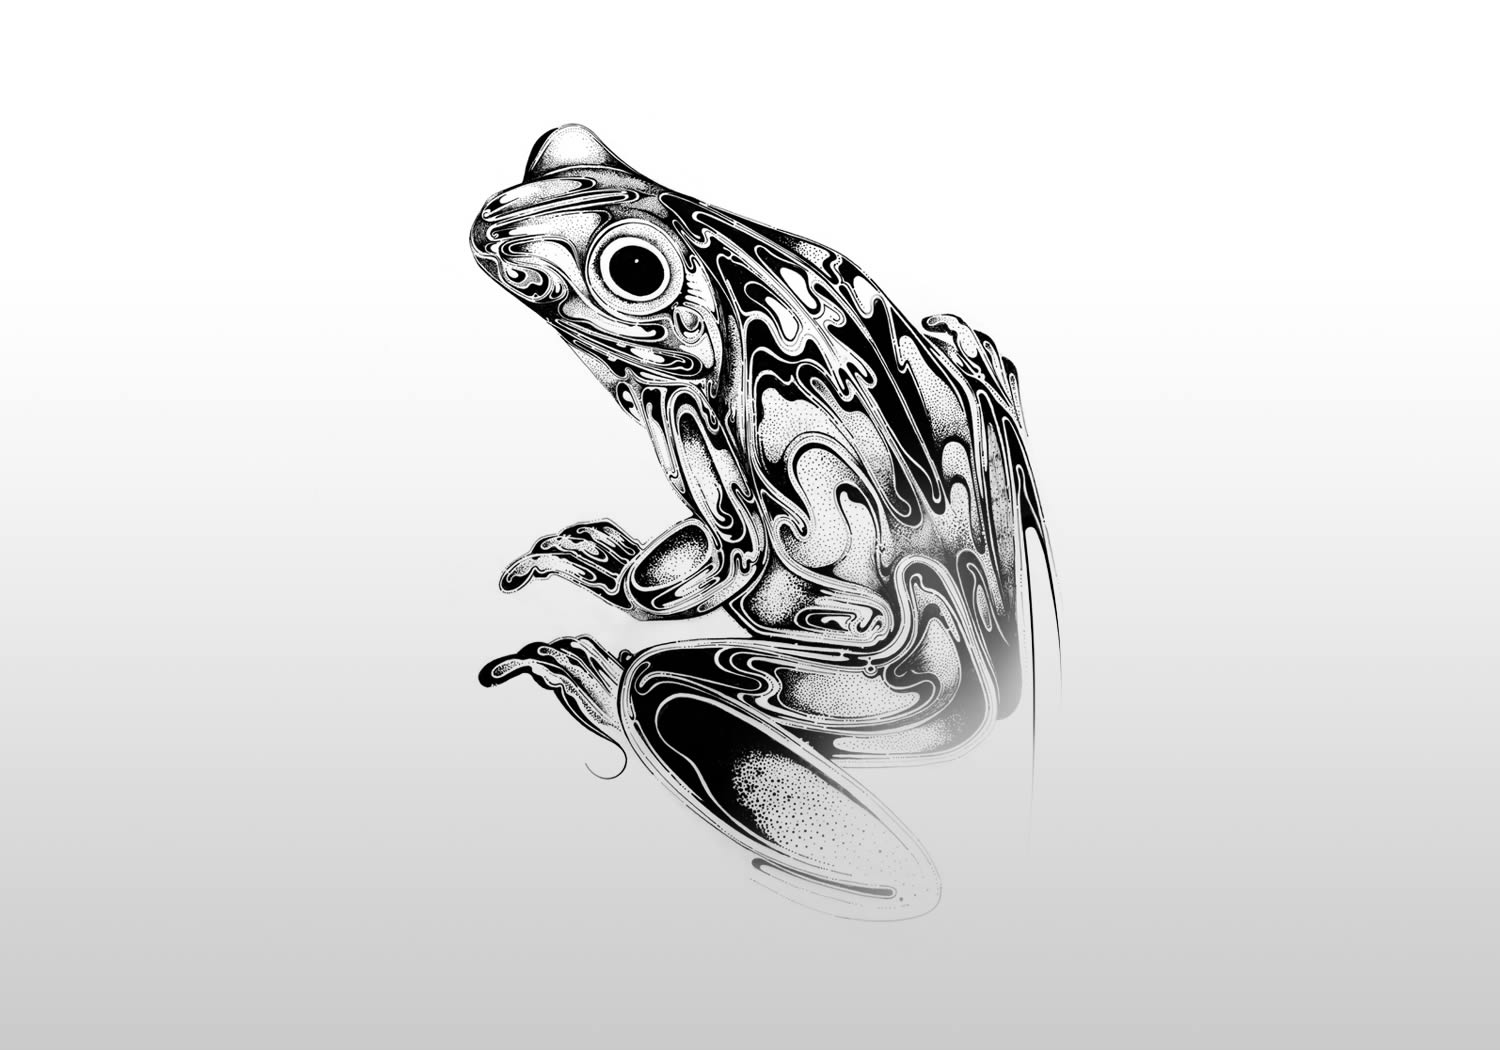 full drawing of frog in black